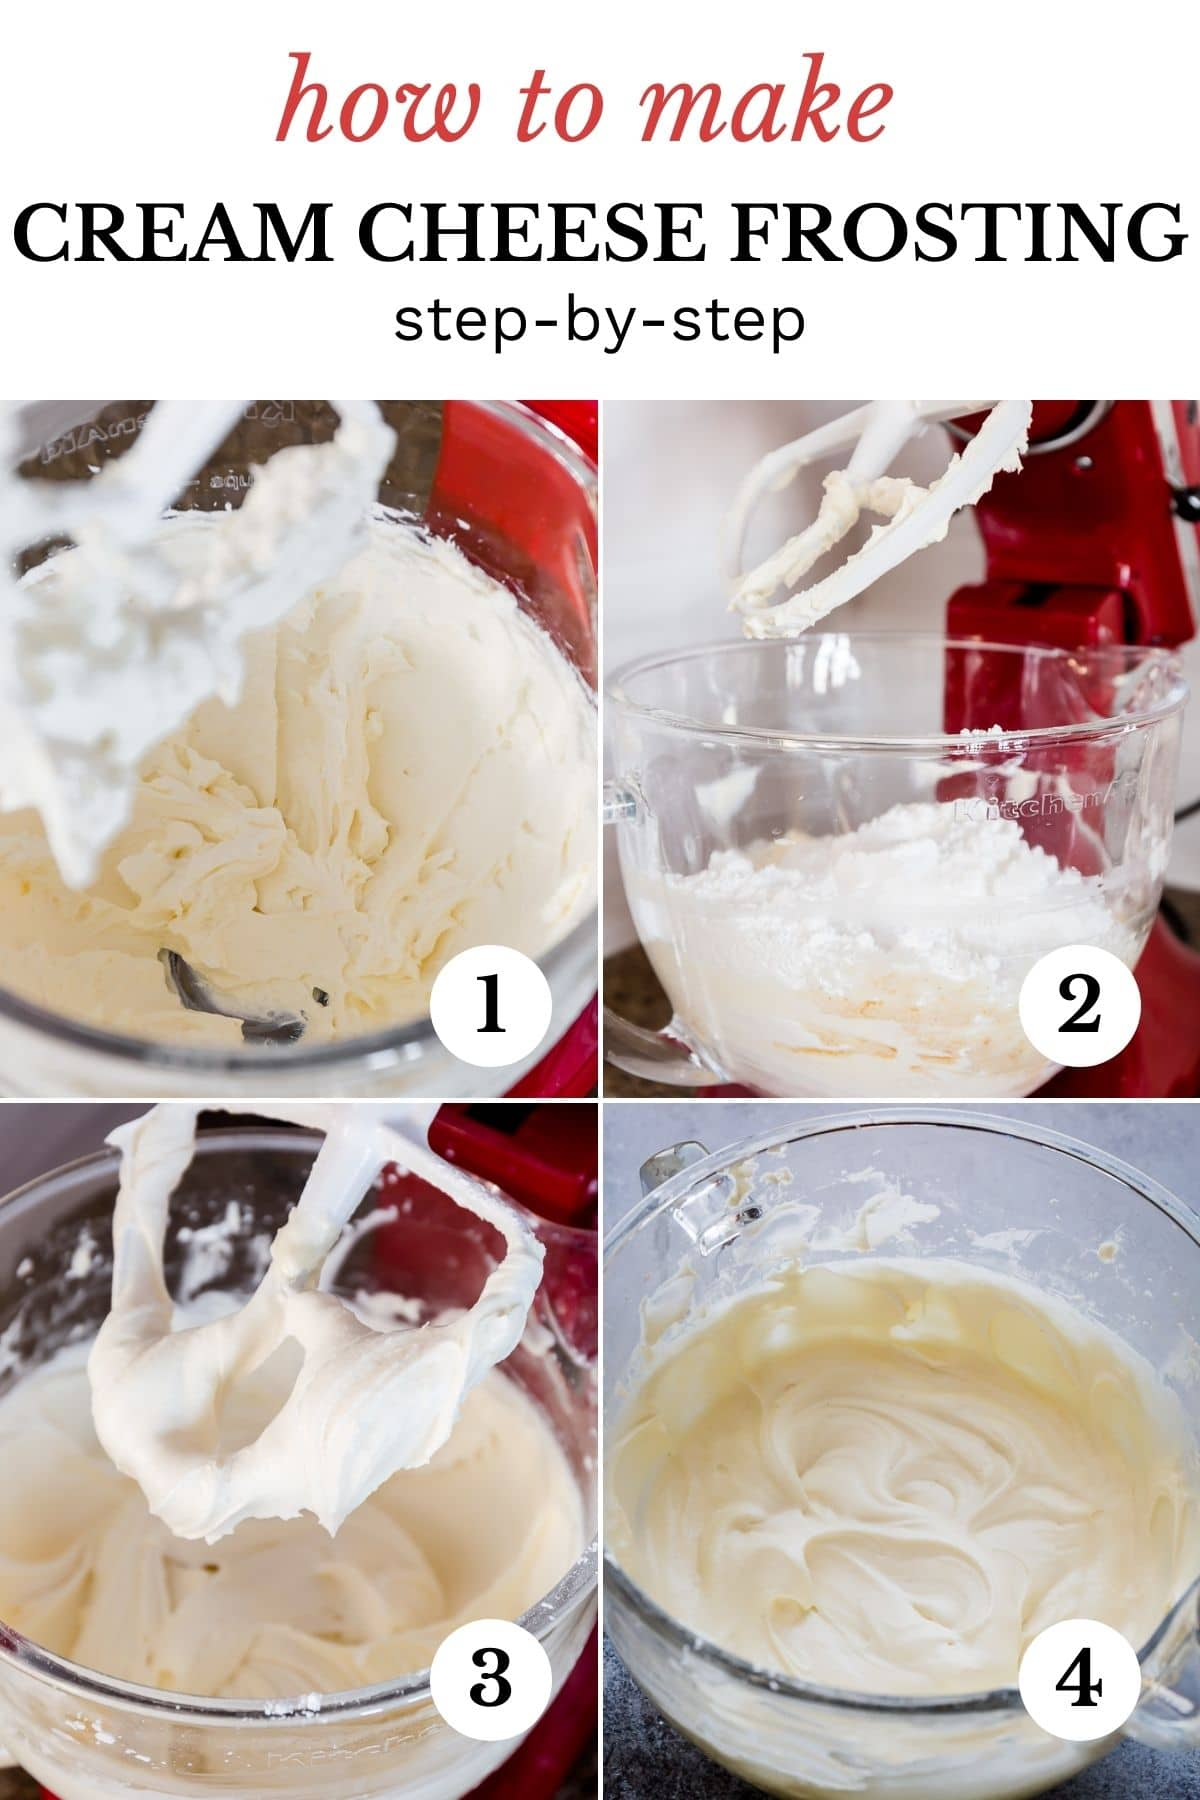 Stand mixer bowl of cream cheese frosting